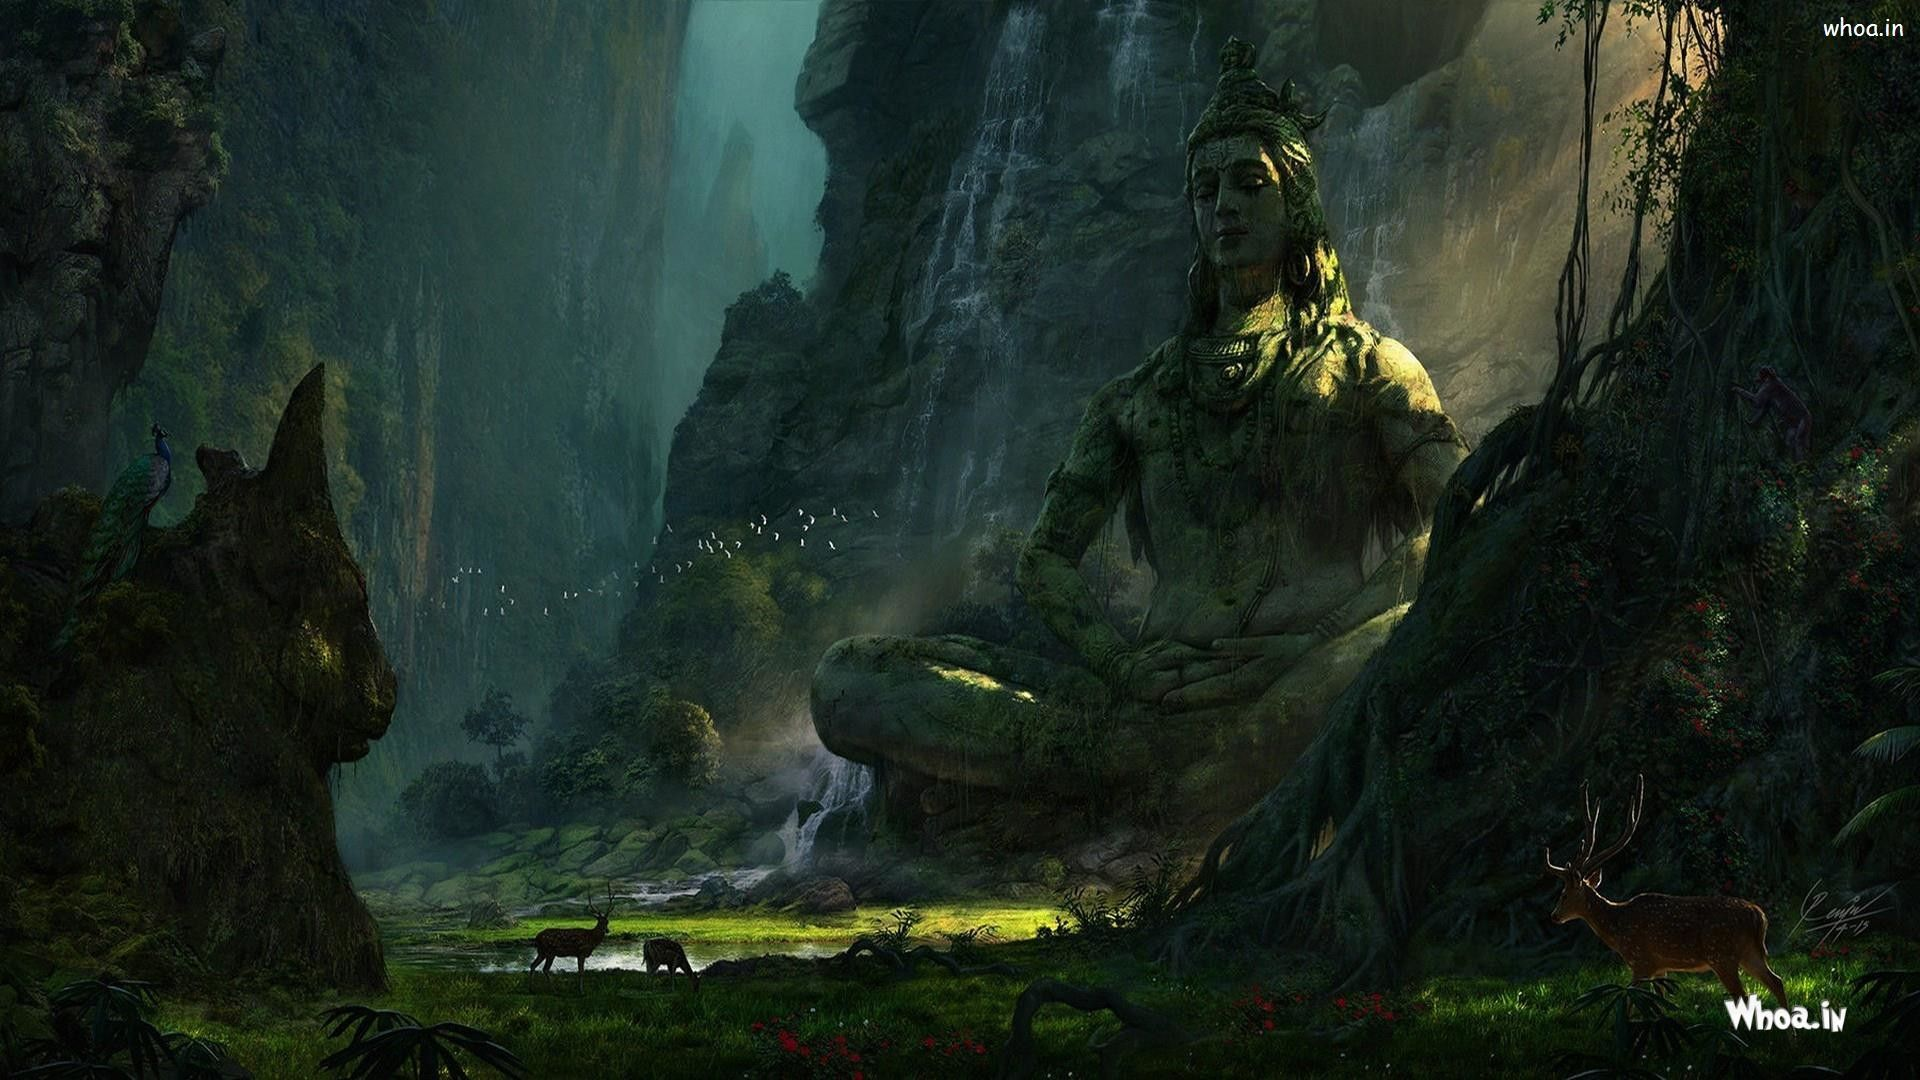 Lord Shiva Wallpapers 3d: Widescreen Lord Shiva Wallpapers 3D 1920x1080 Full HD